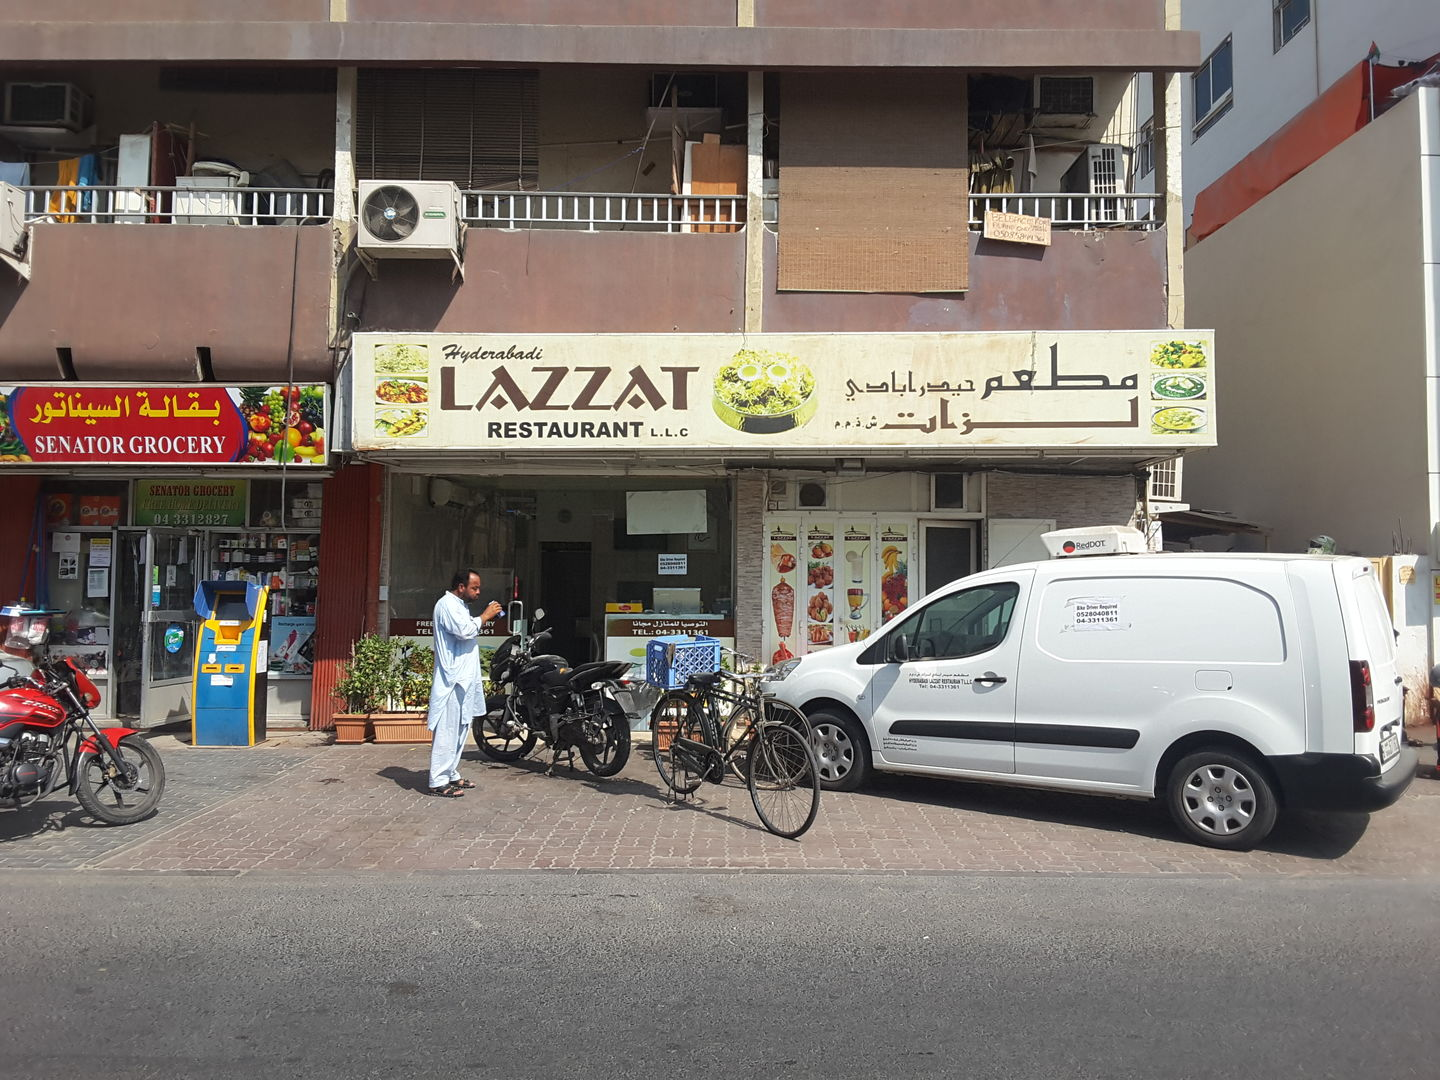 HiDubai-business-hyderabadi-lazzat-restaurant-food-beverage-restaurants-bars-al-karama-dubai-2